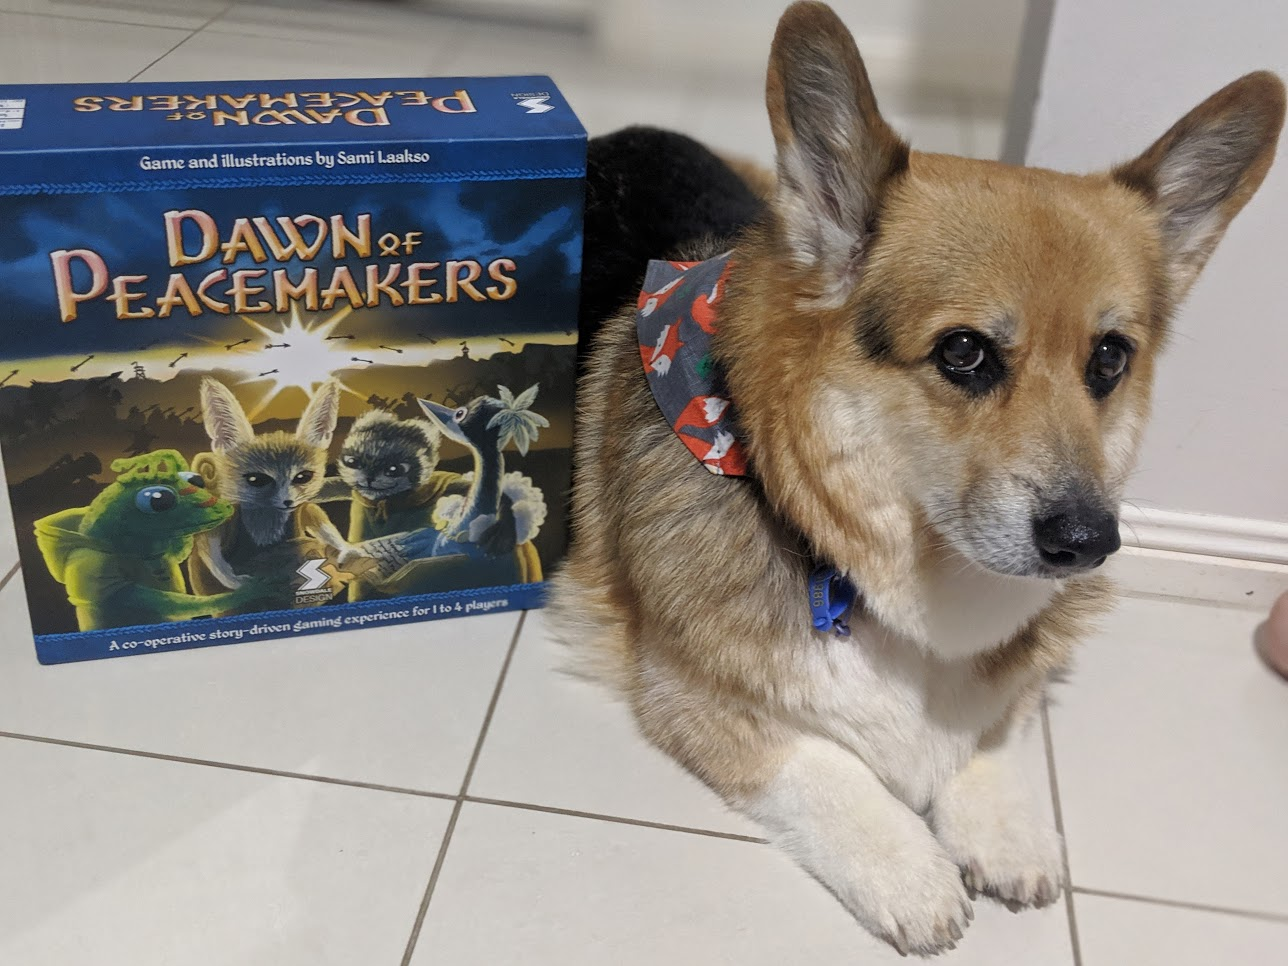 Corgi sitting cutely next to Dawn of the Peacemakers box.